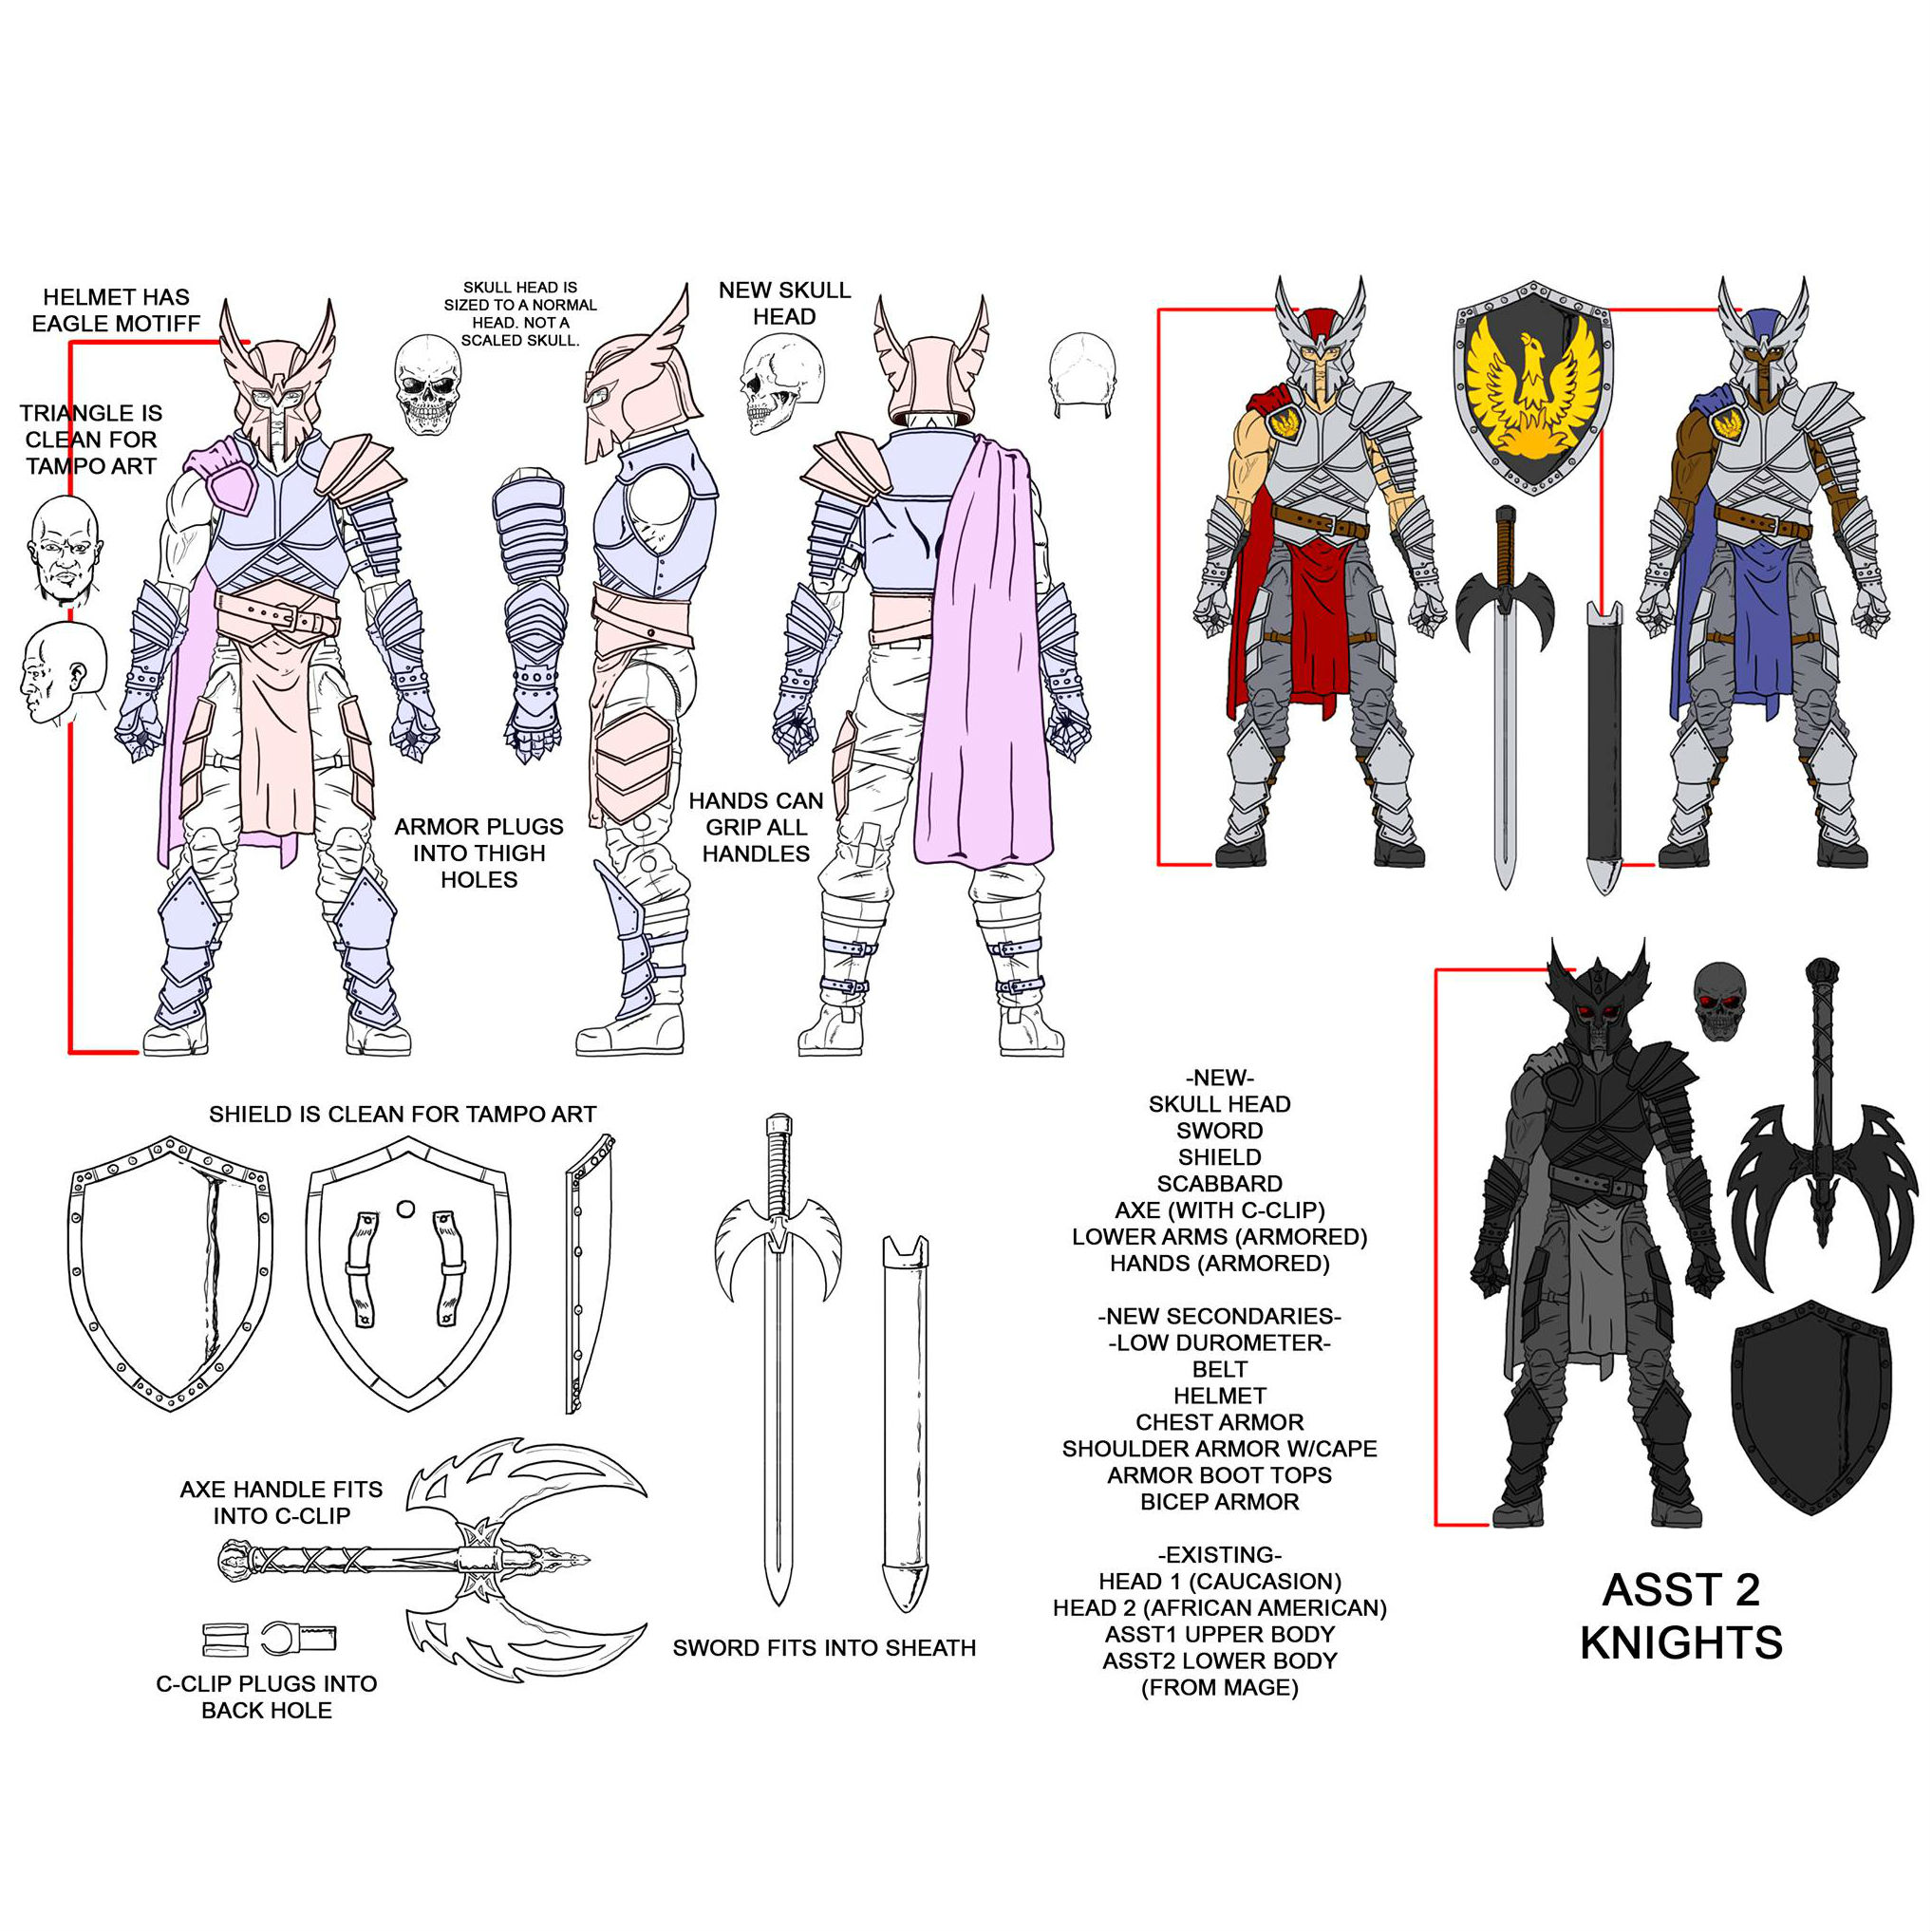 1:18 Vitruvian HACKS Checklist Human Knight action figure